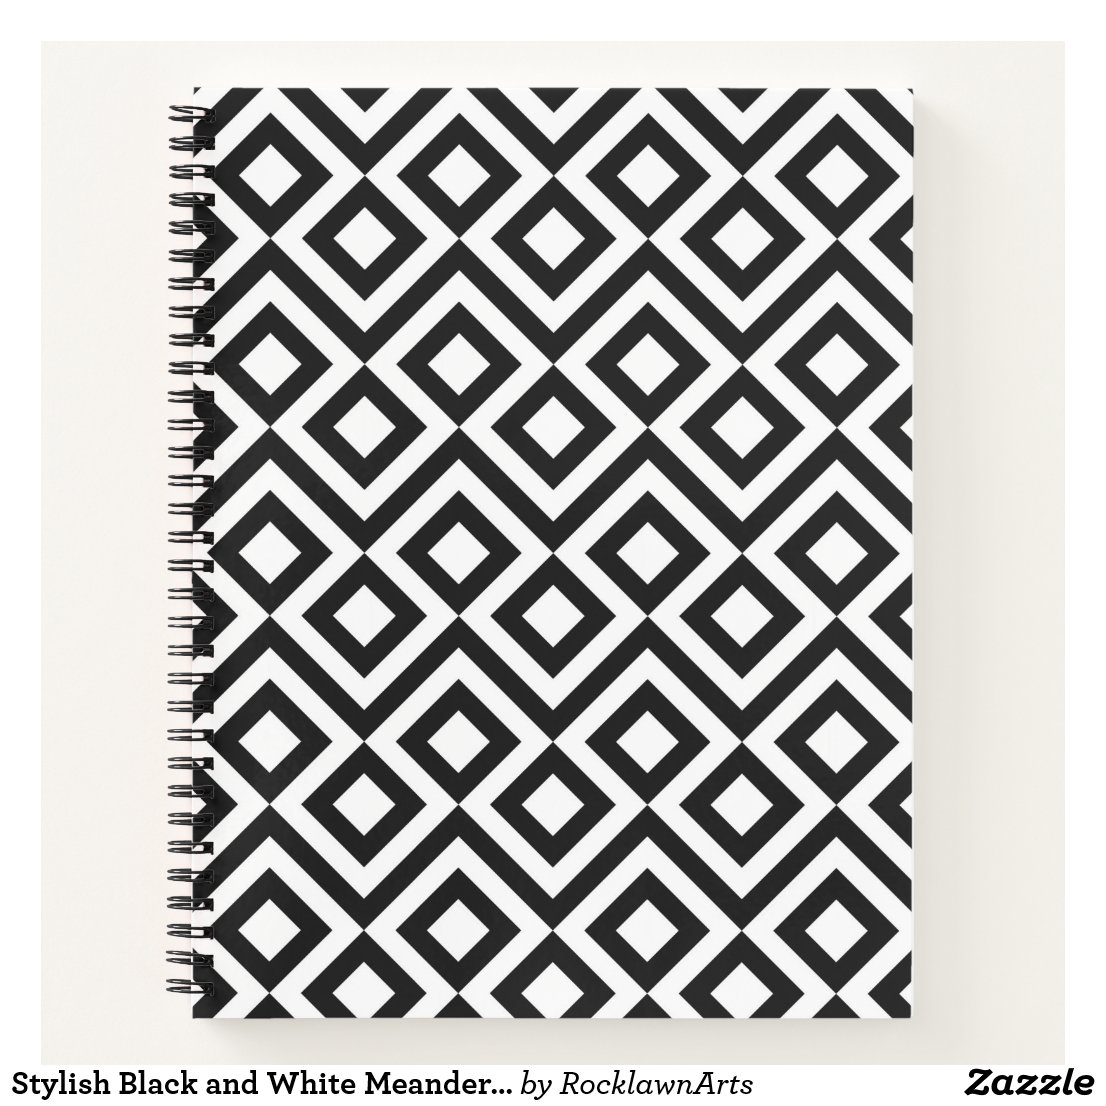 Stylish Black and White Meander Notebook